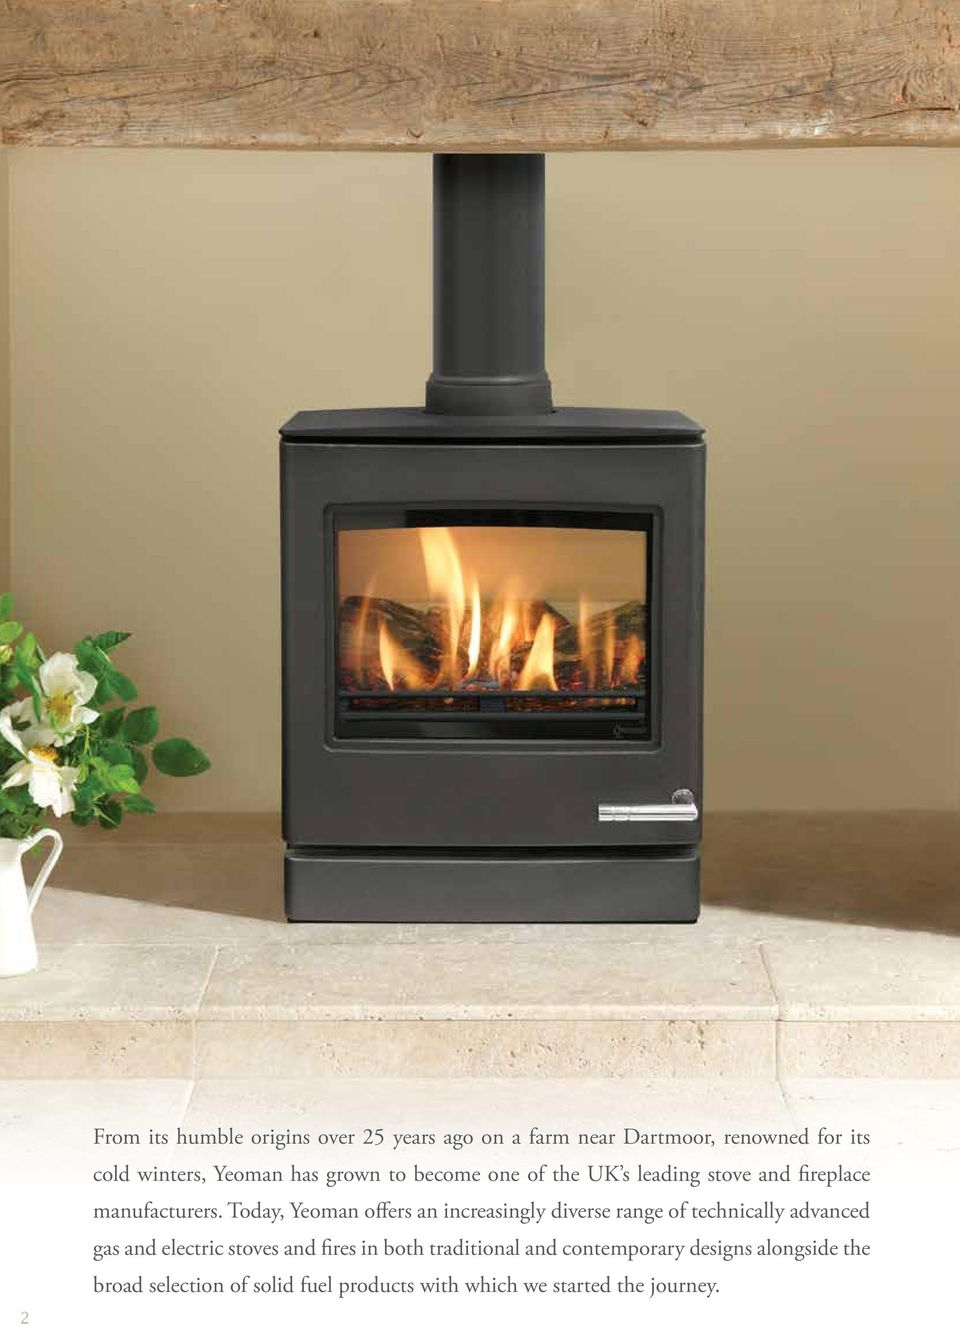 Today, Yeoman offers an increasingly diverse range of technically advanced gas and electric stoves and